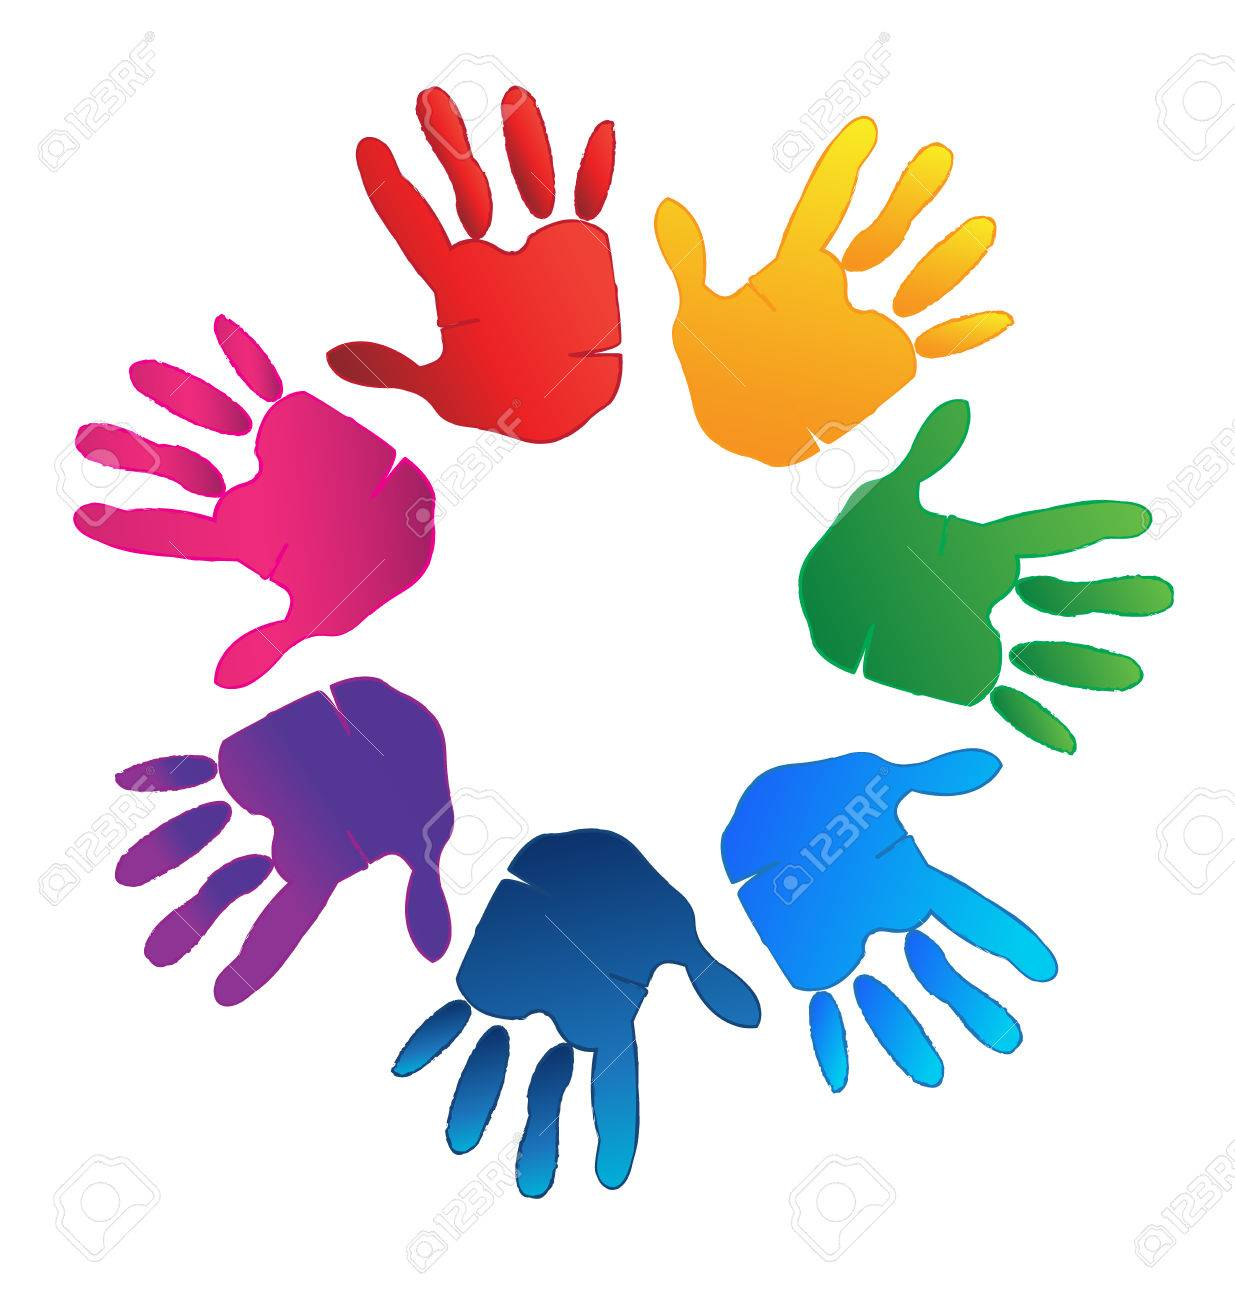 hands colorful representing a happy family love and support rh 123rf com free vector handstand free vector hands shaking